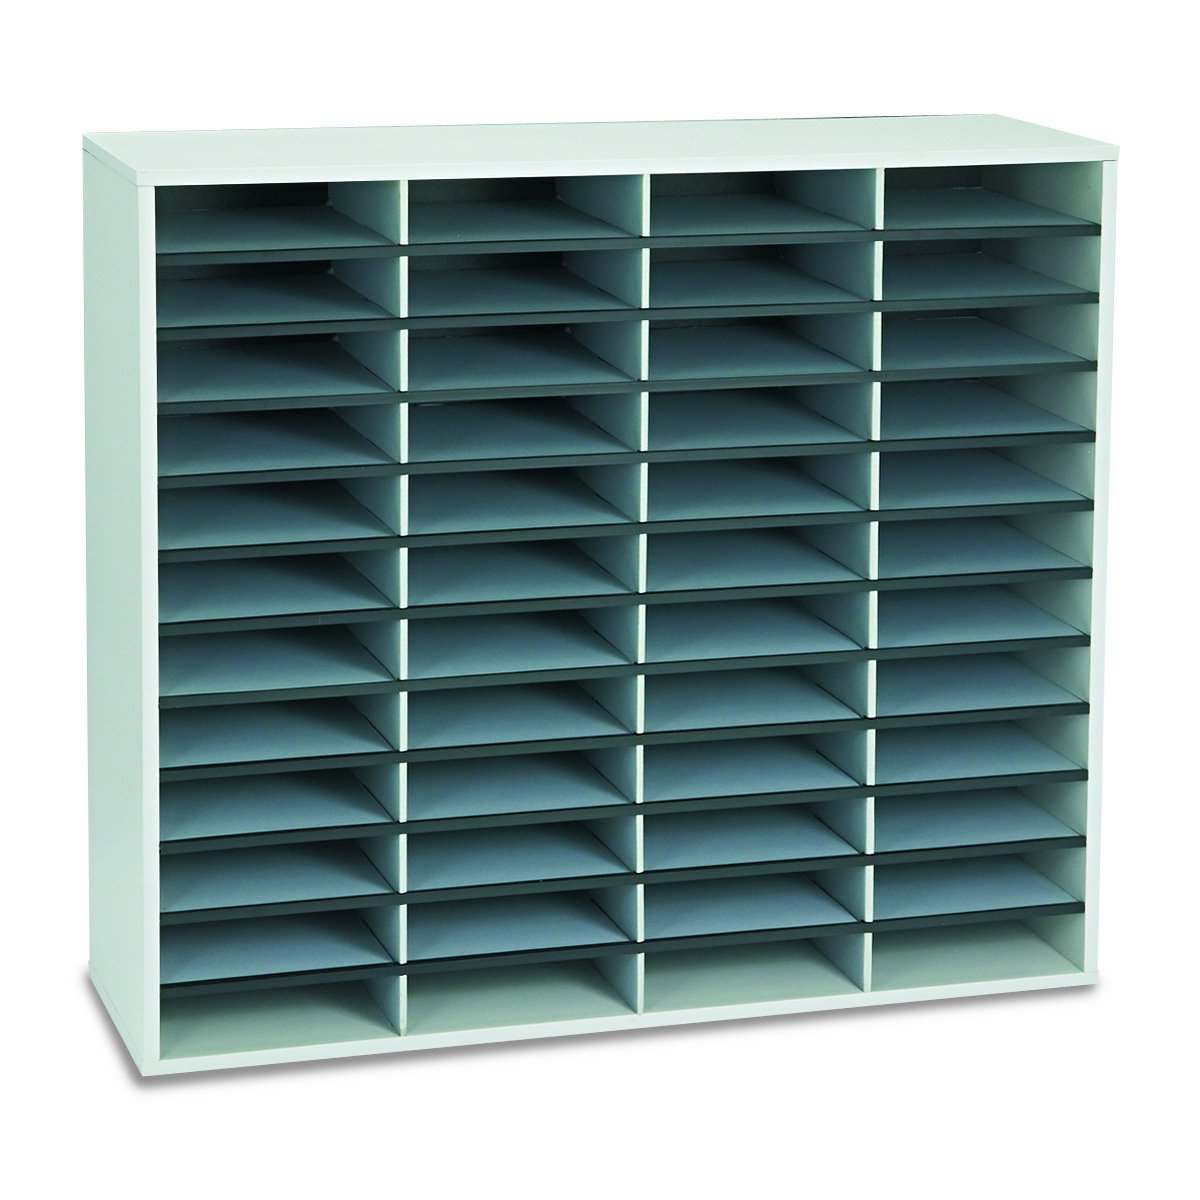 Fellowes 25081 Literature Organizer, 48 Letter Sections, 38 1/4 x 11 7/8 x 34 11/16, Dove Gray